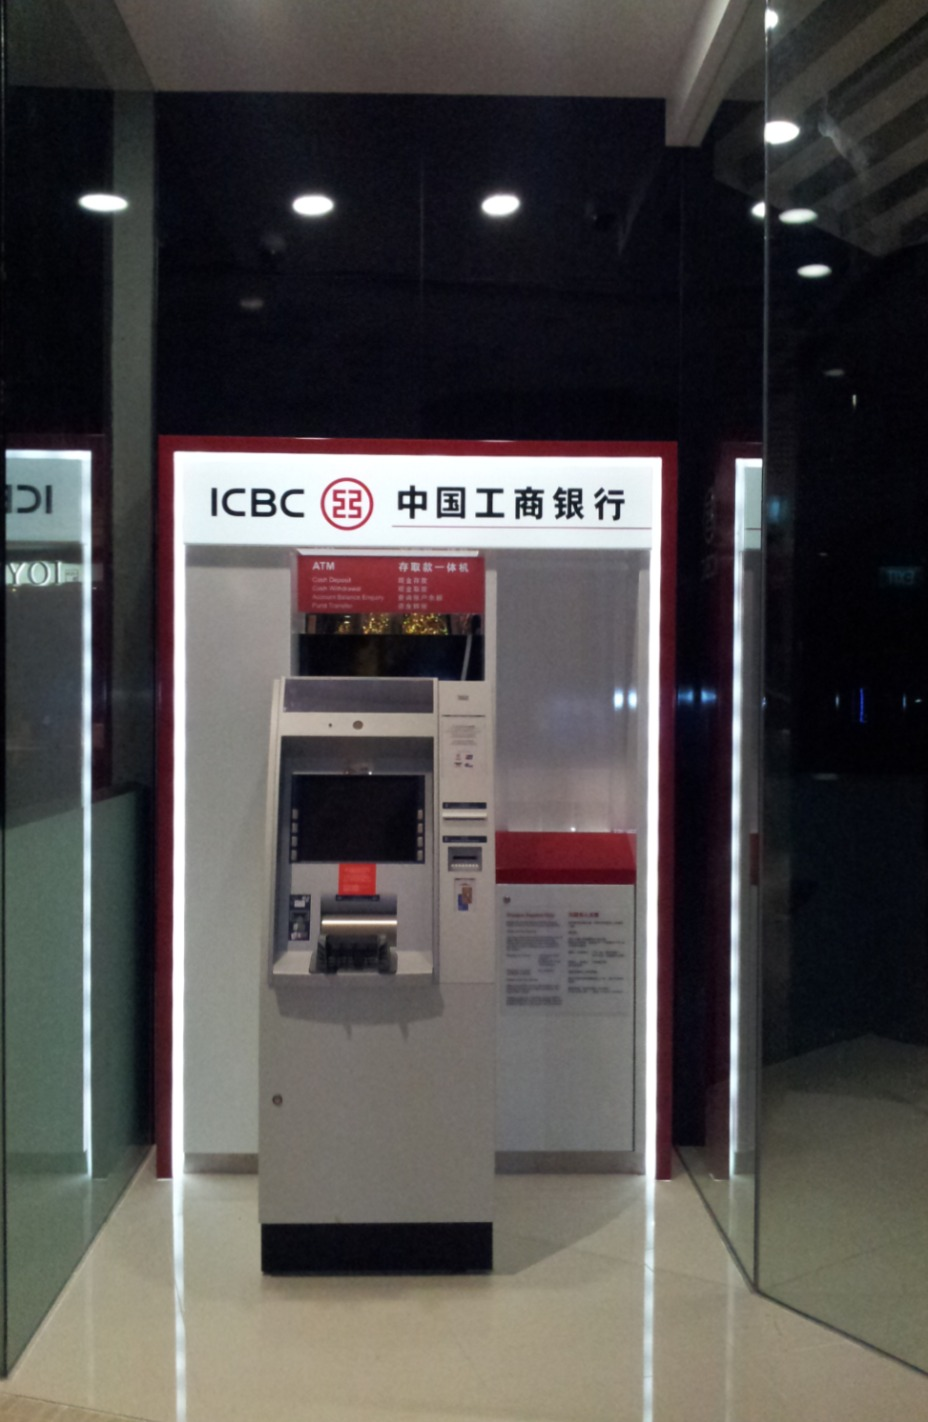 ICBC@East Point Mall